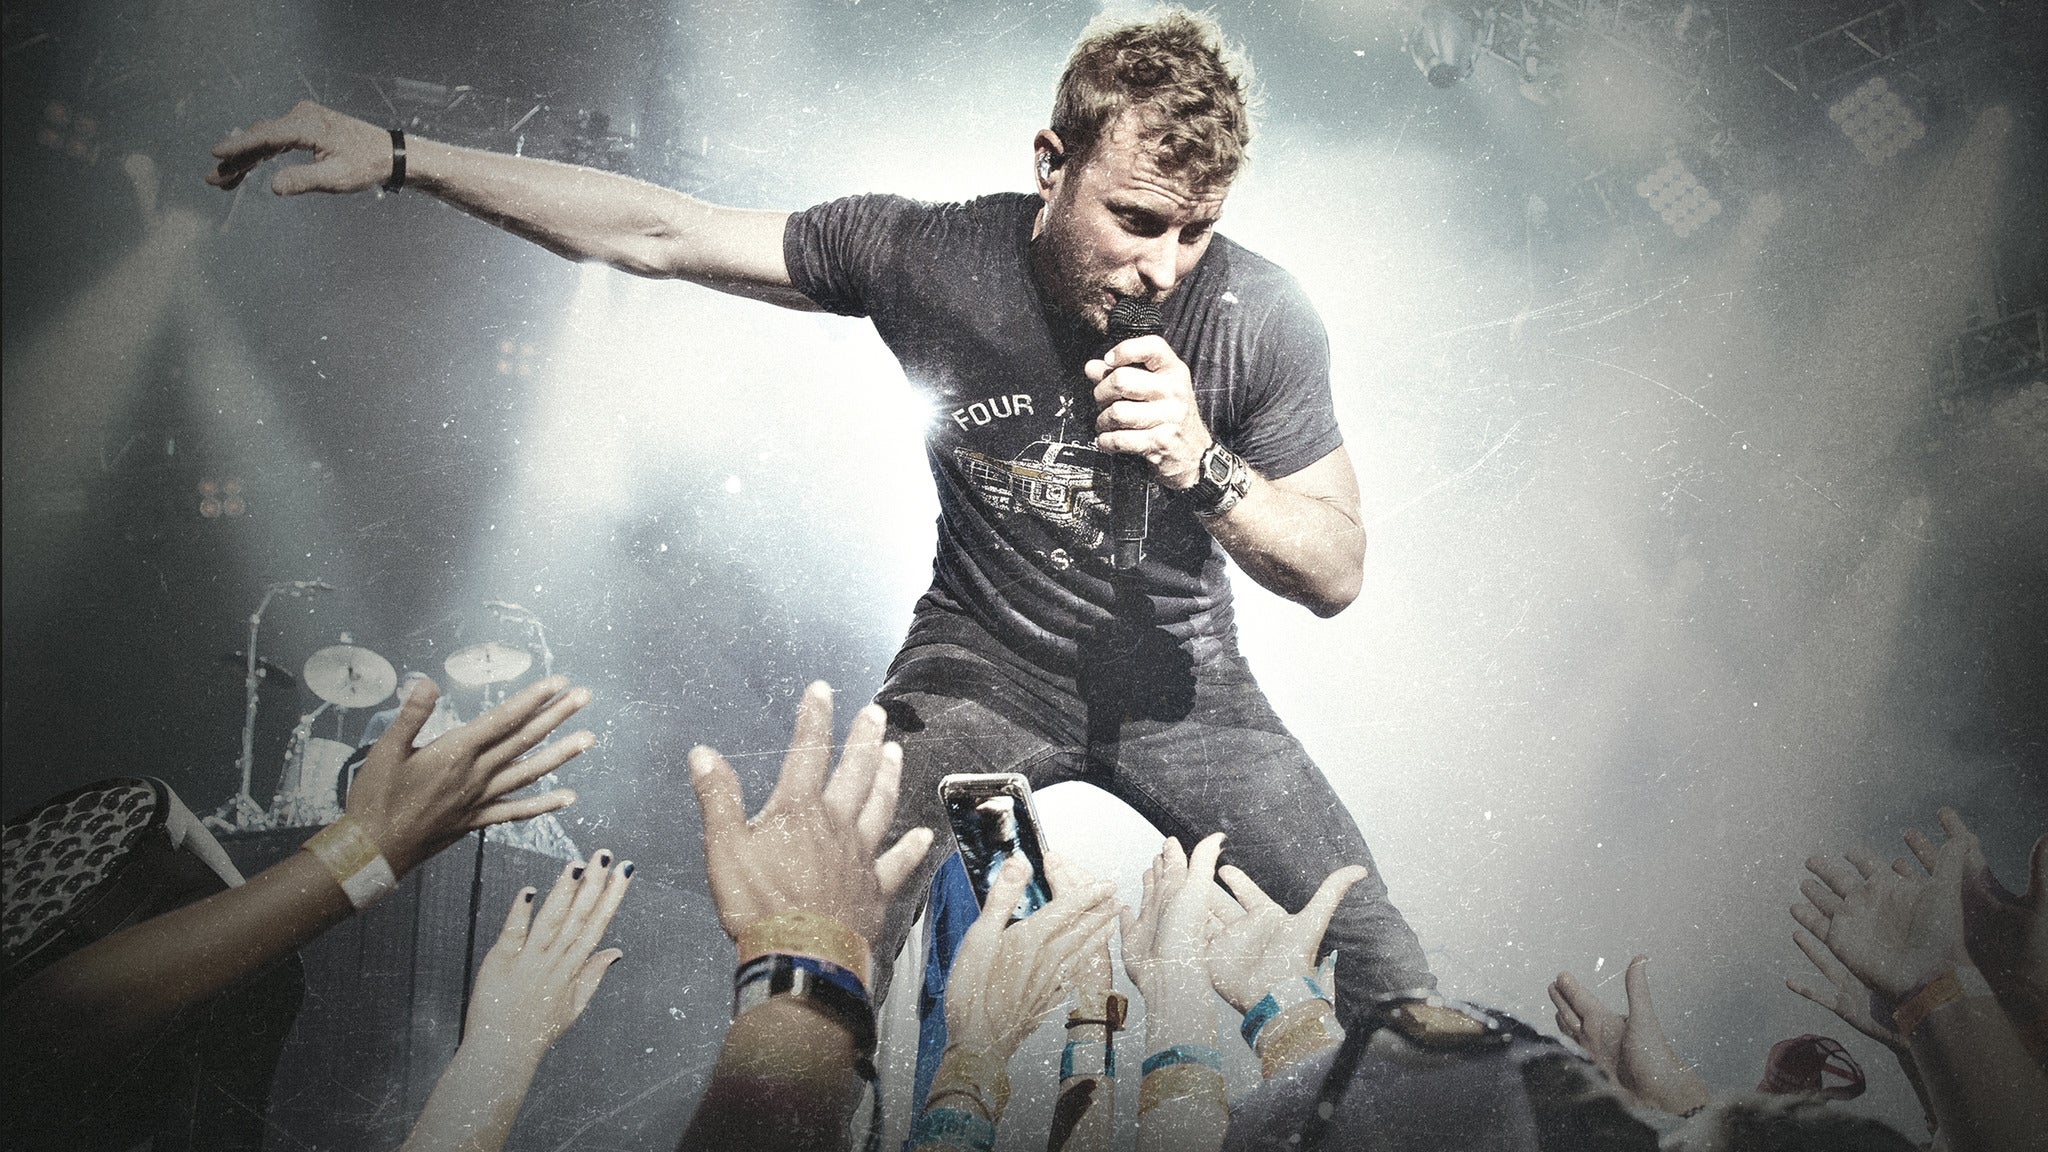 Dierks Bentley - What The Hell World Tour 2017